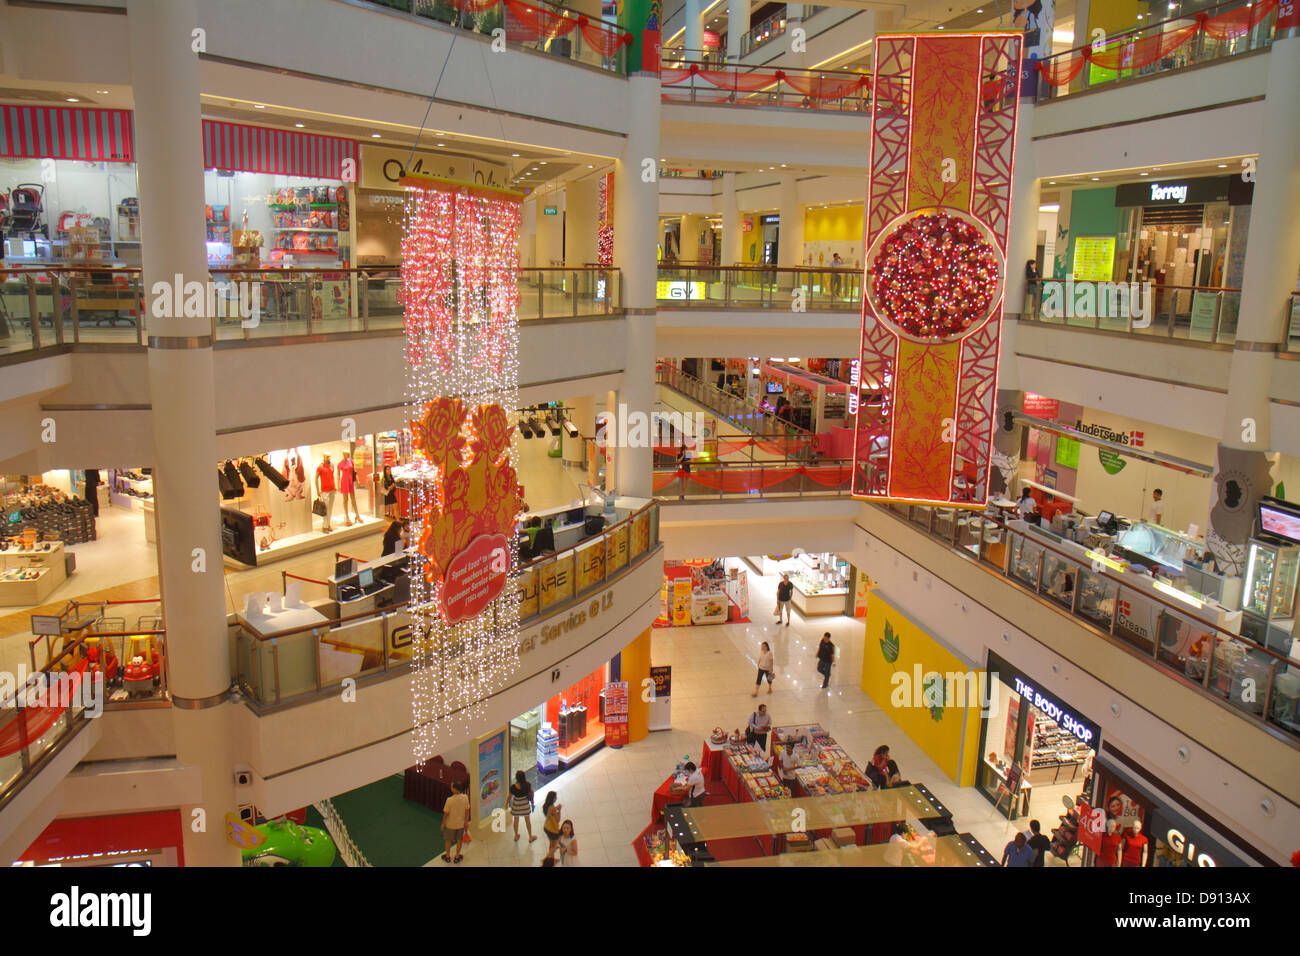 Singapore Southeast Asia City Square Mall For Sale Retail Products Display Sale Product Store Interior Sing130131032 Stock Photo Alamy